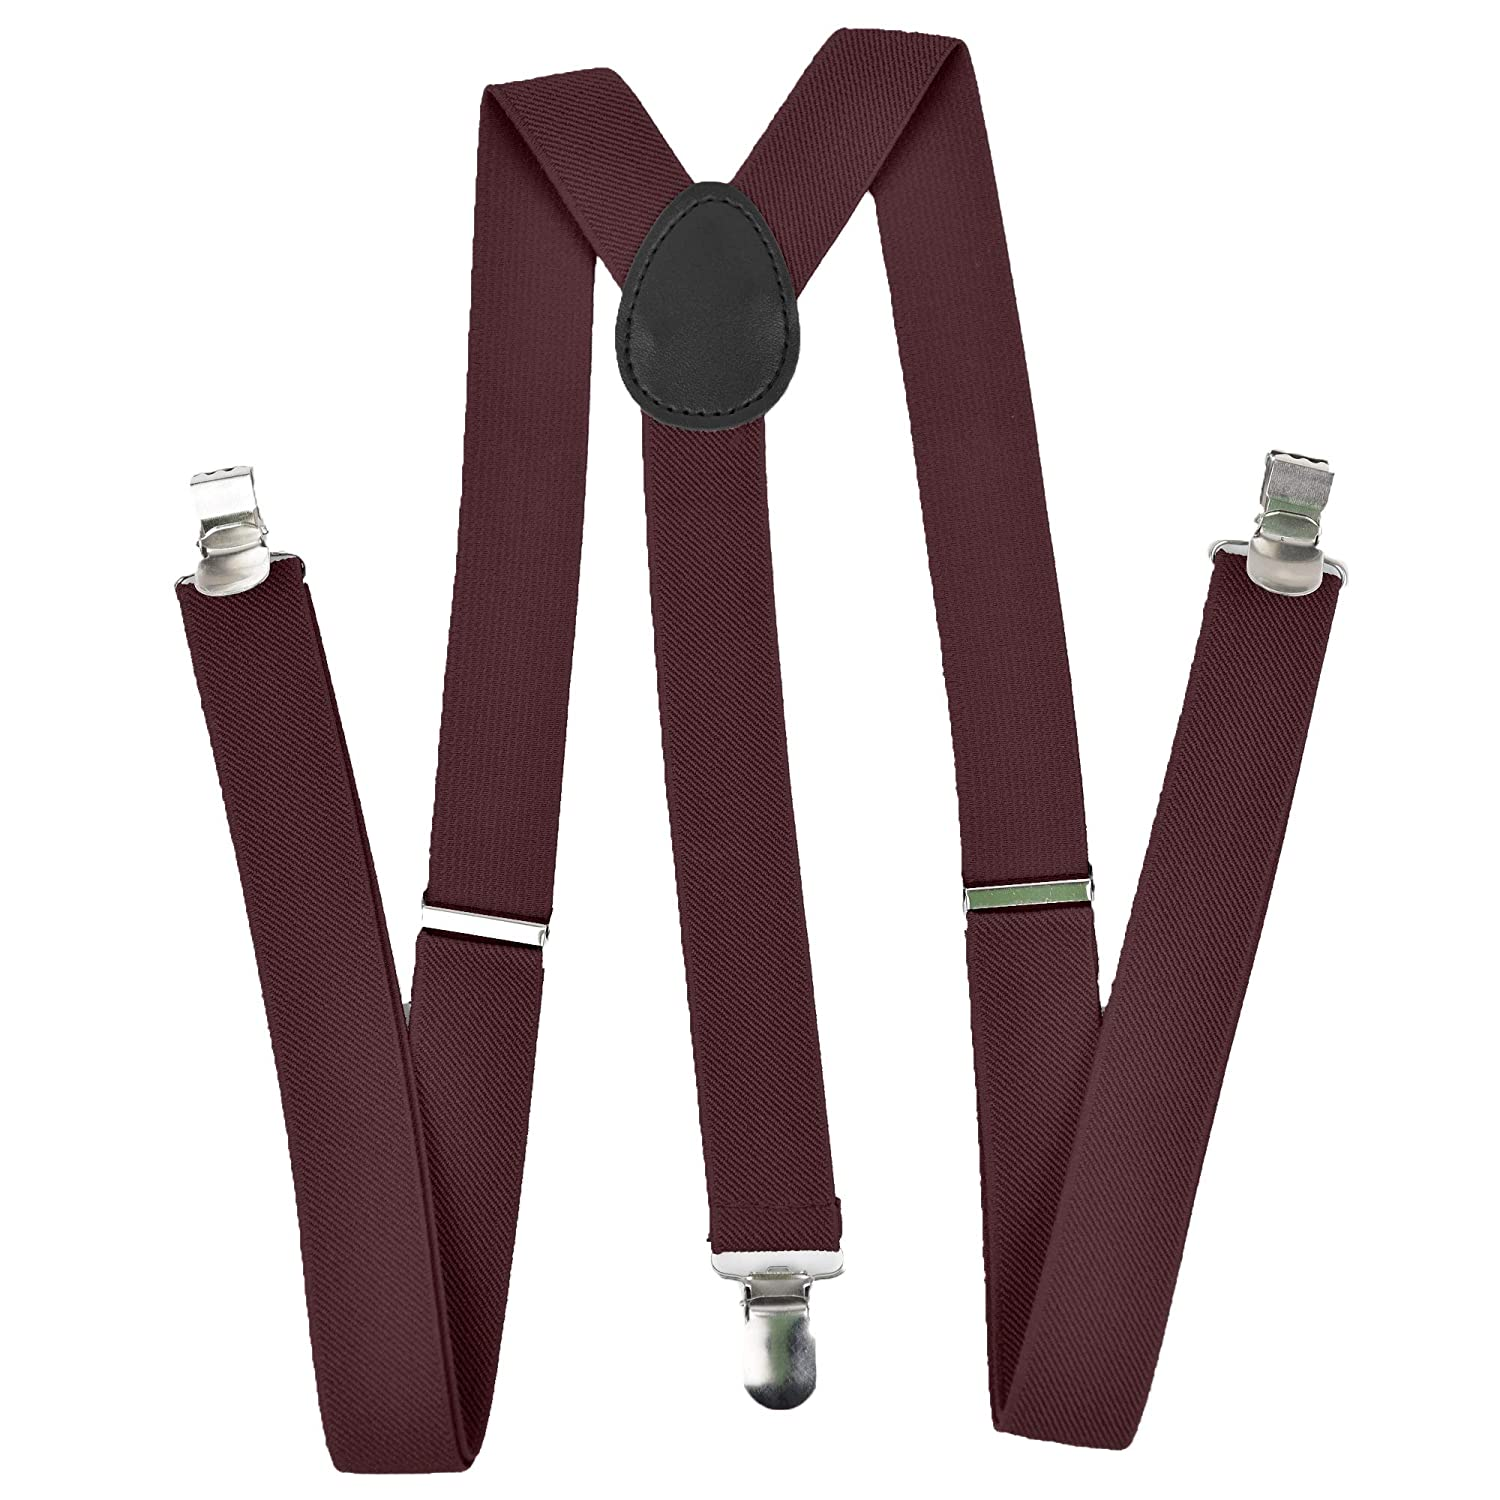 Classy Mens Suspenders 1 Width Adjustable Elastic Straps by Star Falcons Brown Comfortable Hold Y Back Design